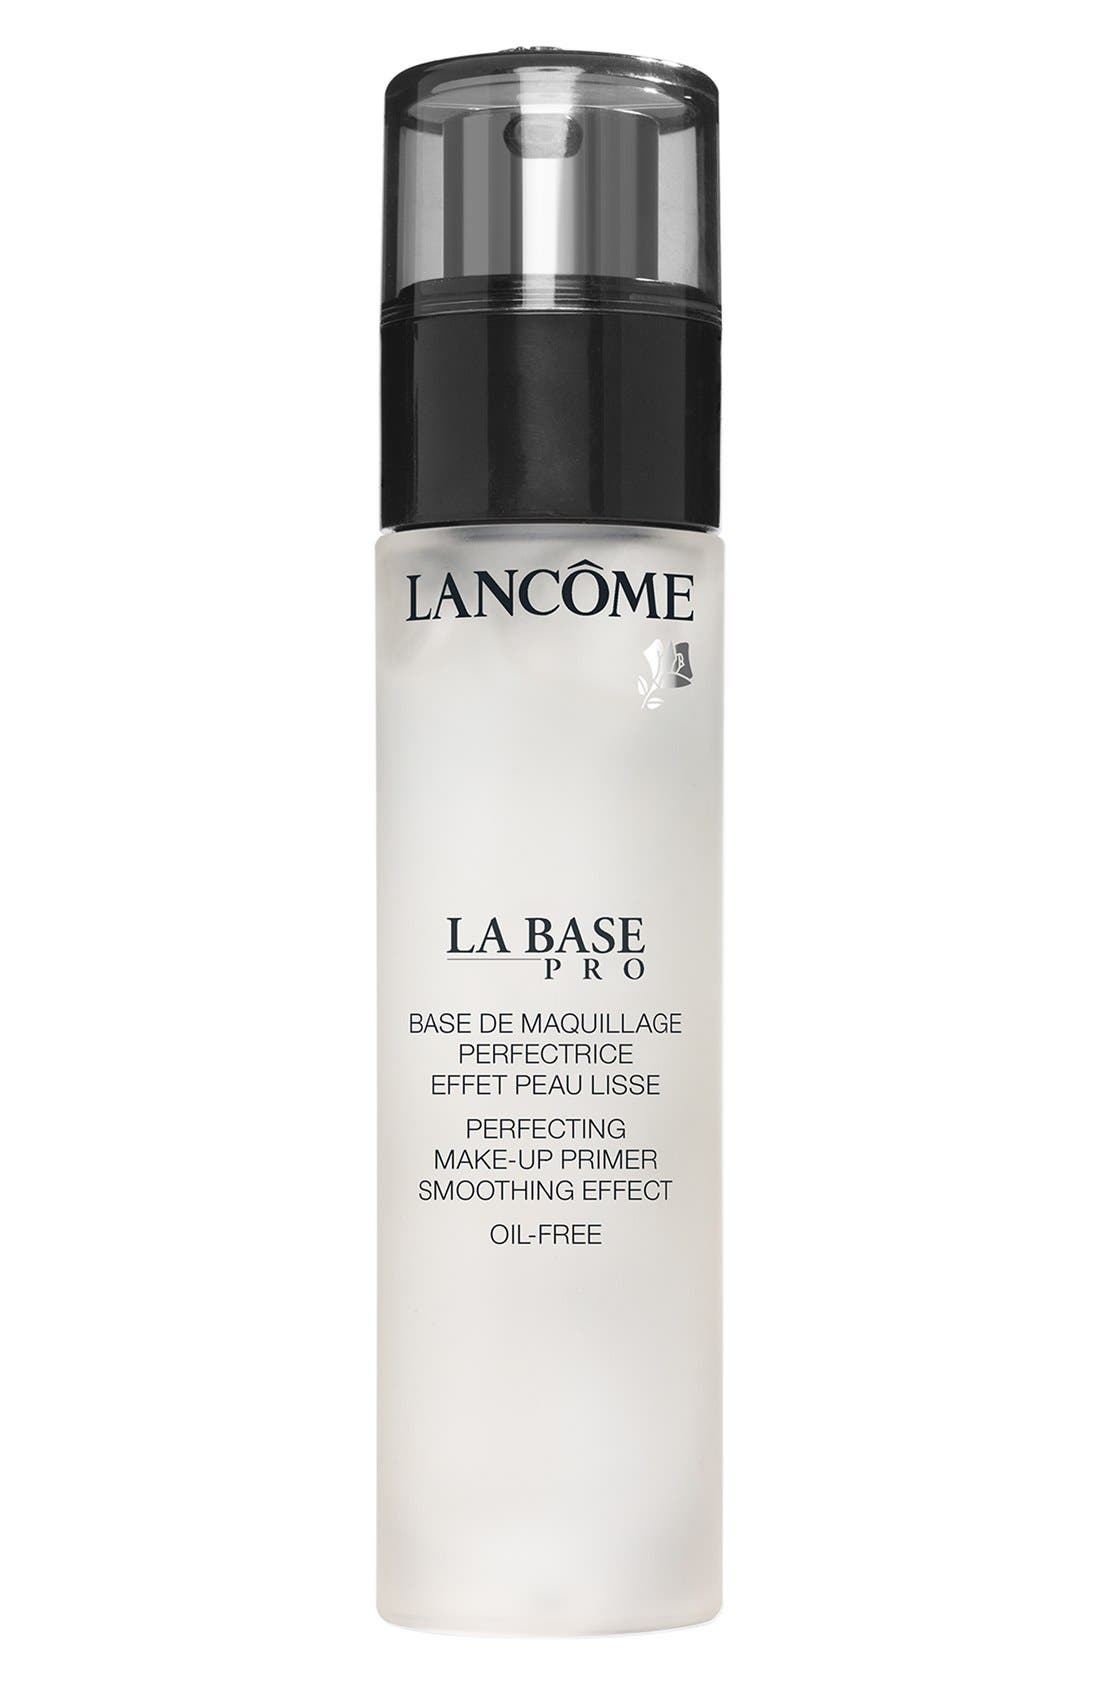 Lancôme La Base Pro Perfecting Makeup Primer